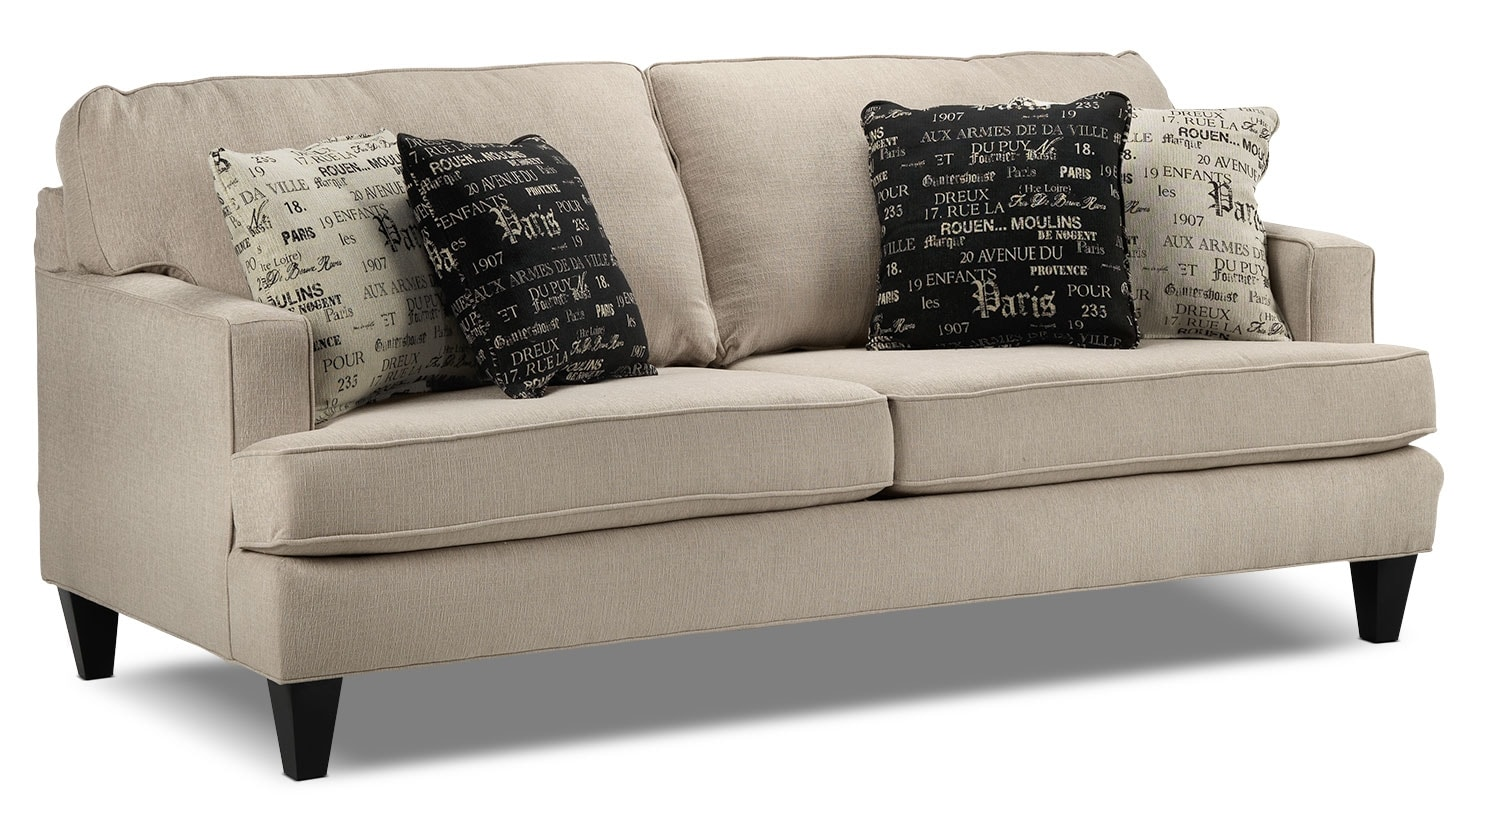 dalton sofa leon s new york style bed snap home the honoroak photos on pinterest